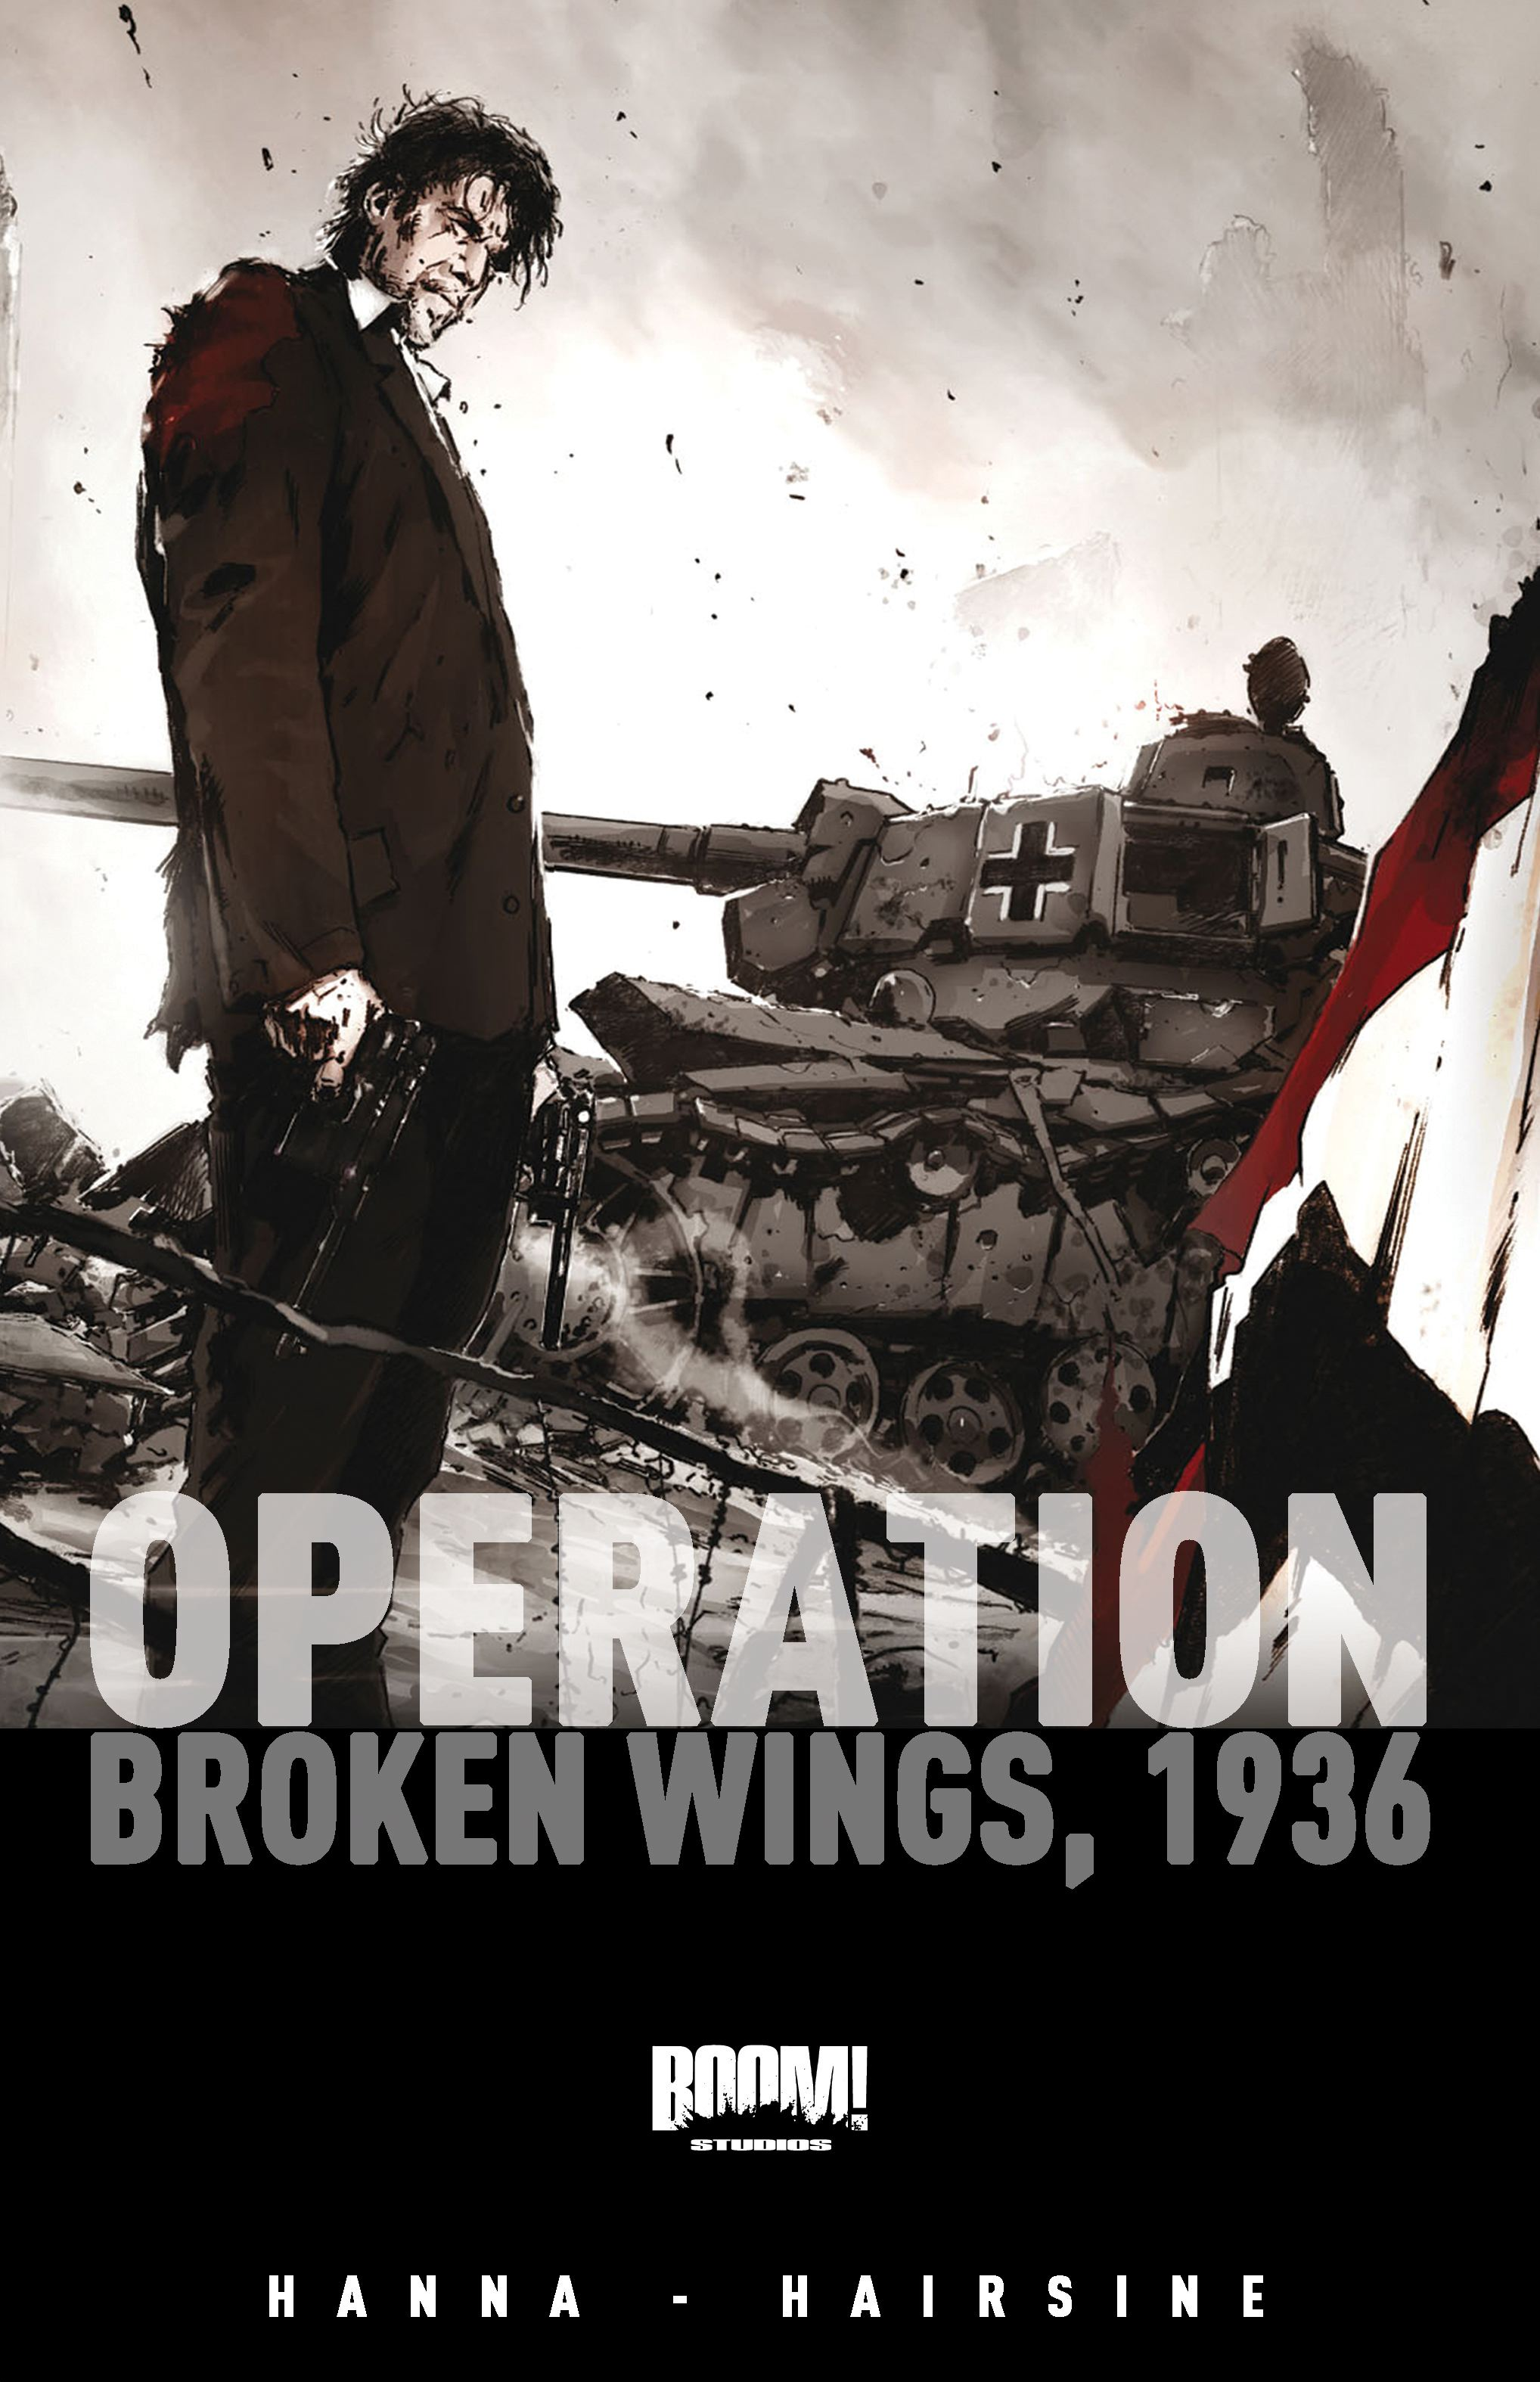 Operation-broken-wings-1936-9781608862672_hr